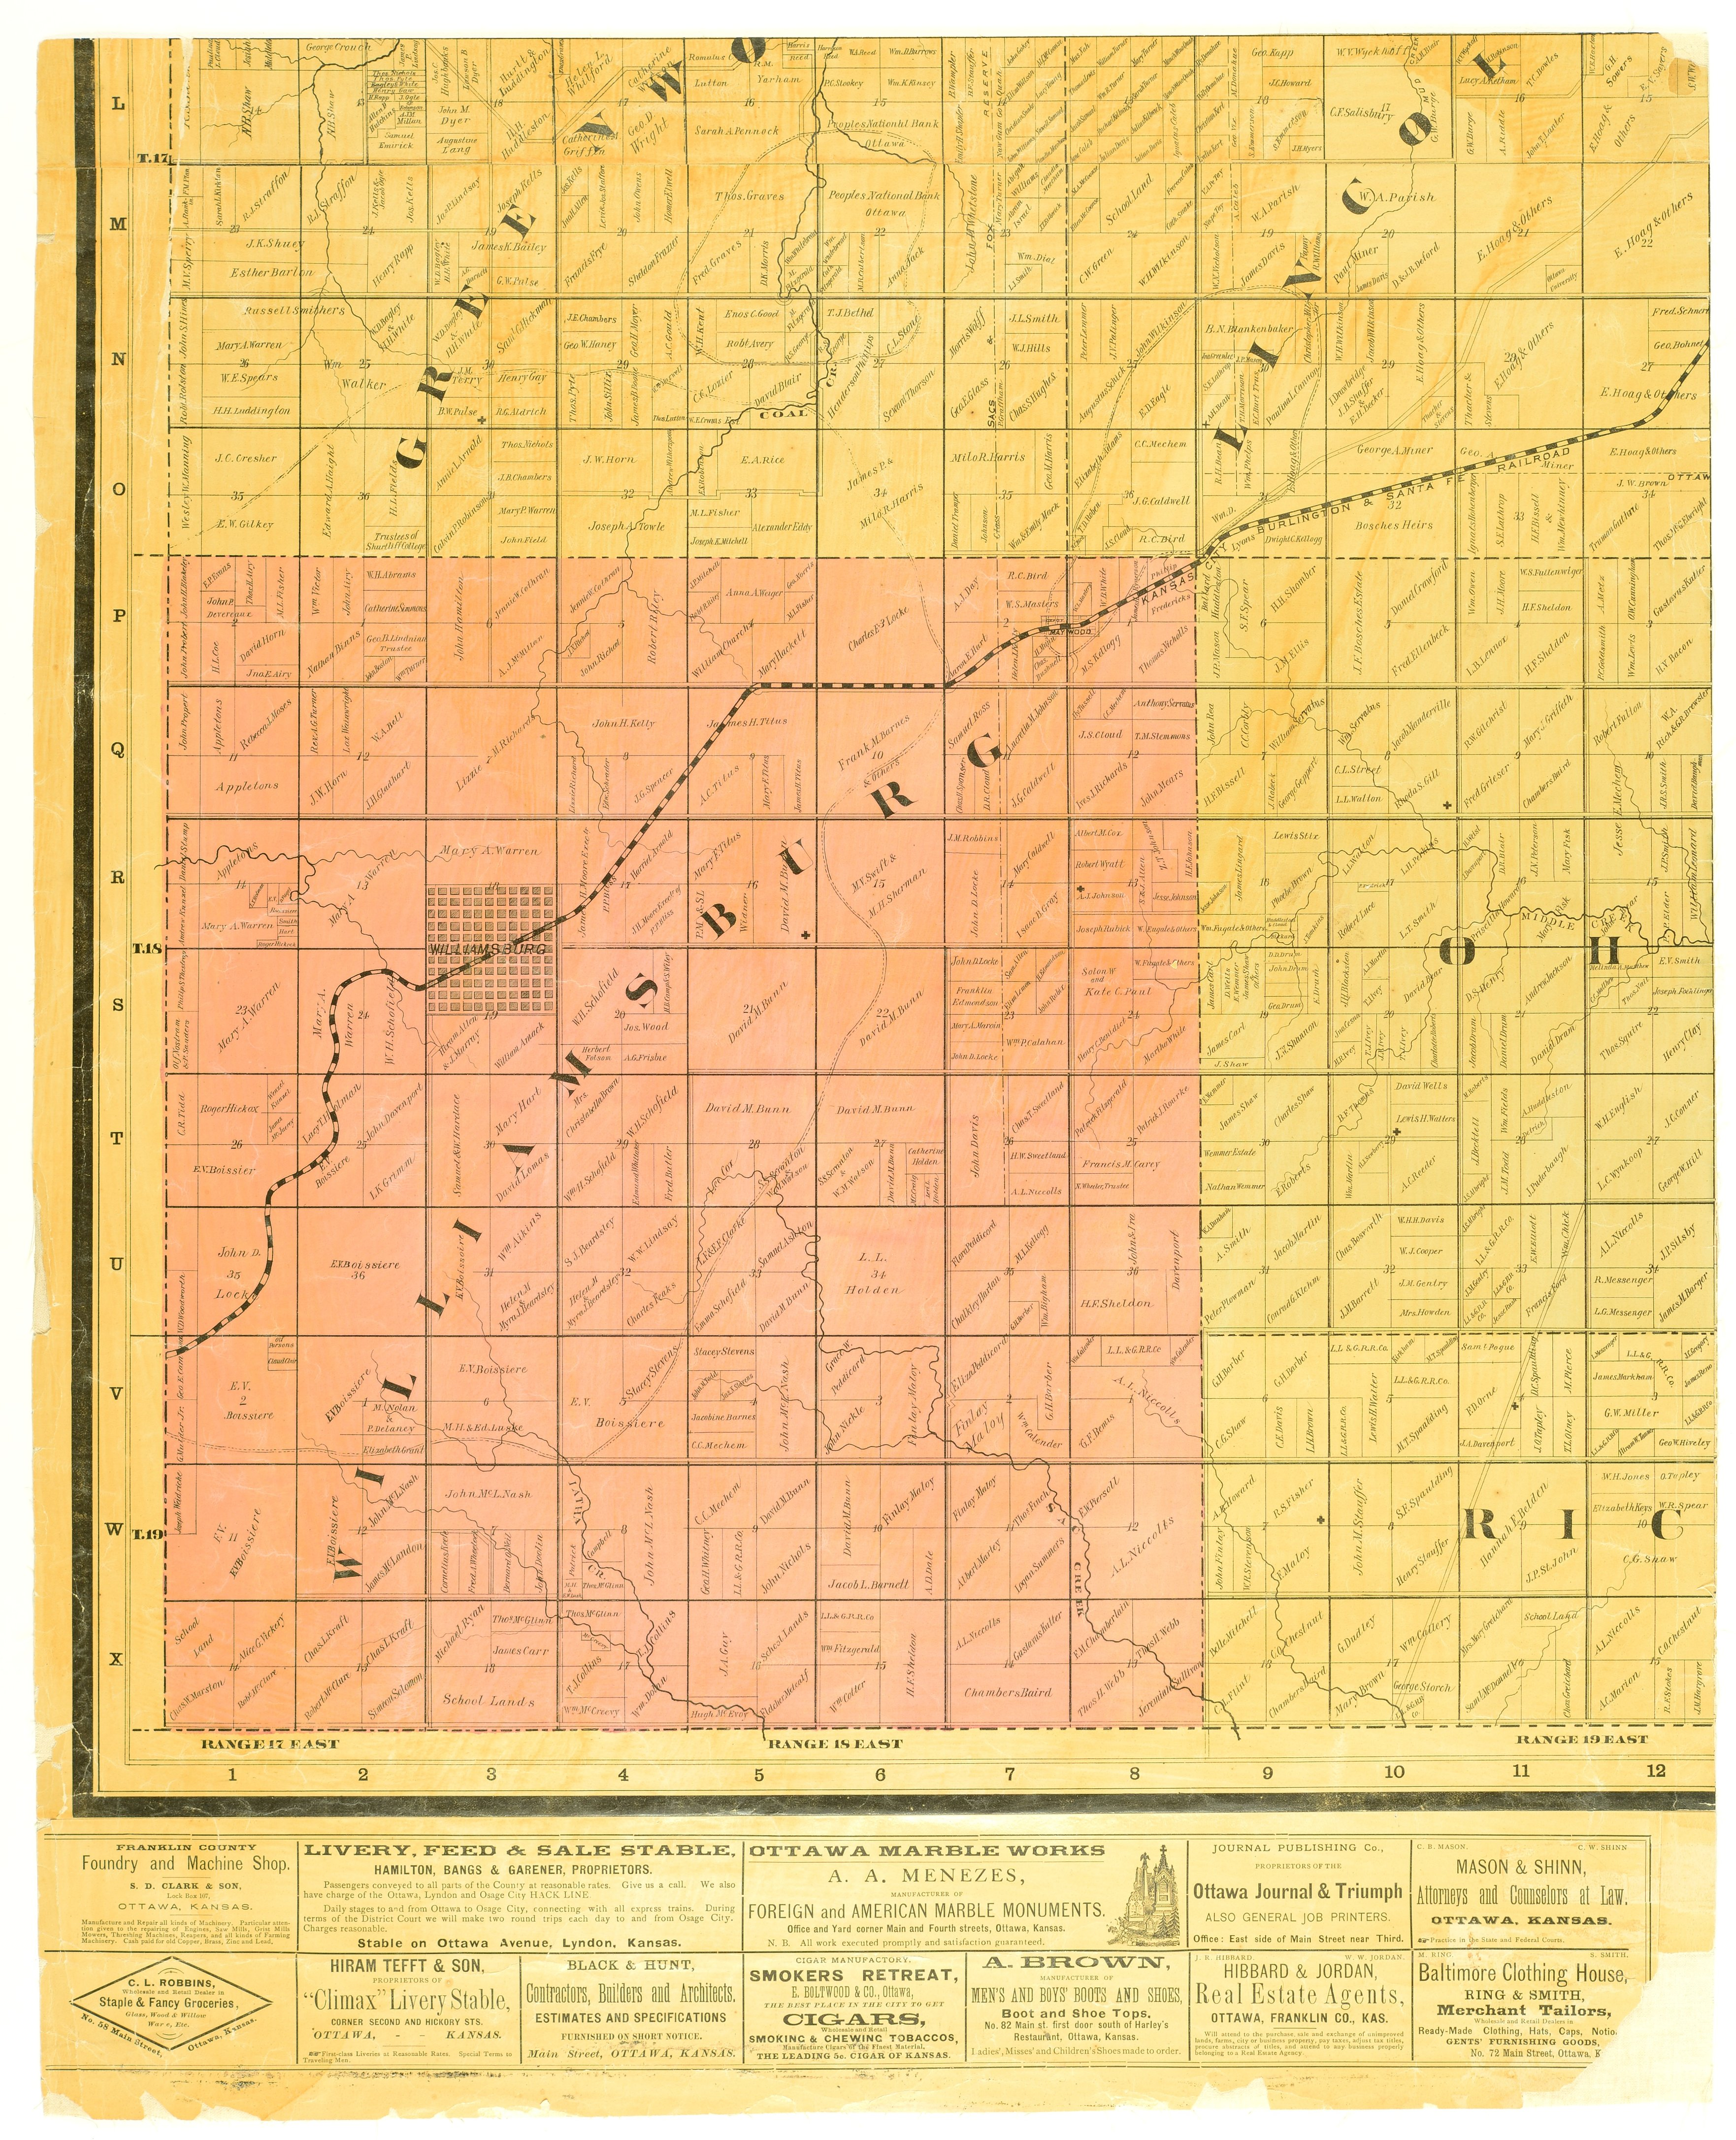 Map of Franklin County, Kansas / compiled by Leonard F. Shaw & G. D. Stinebaugh - 4